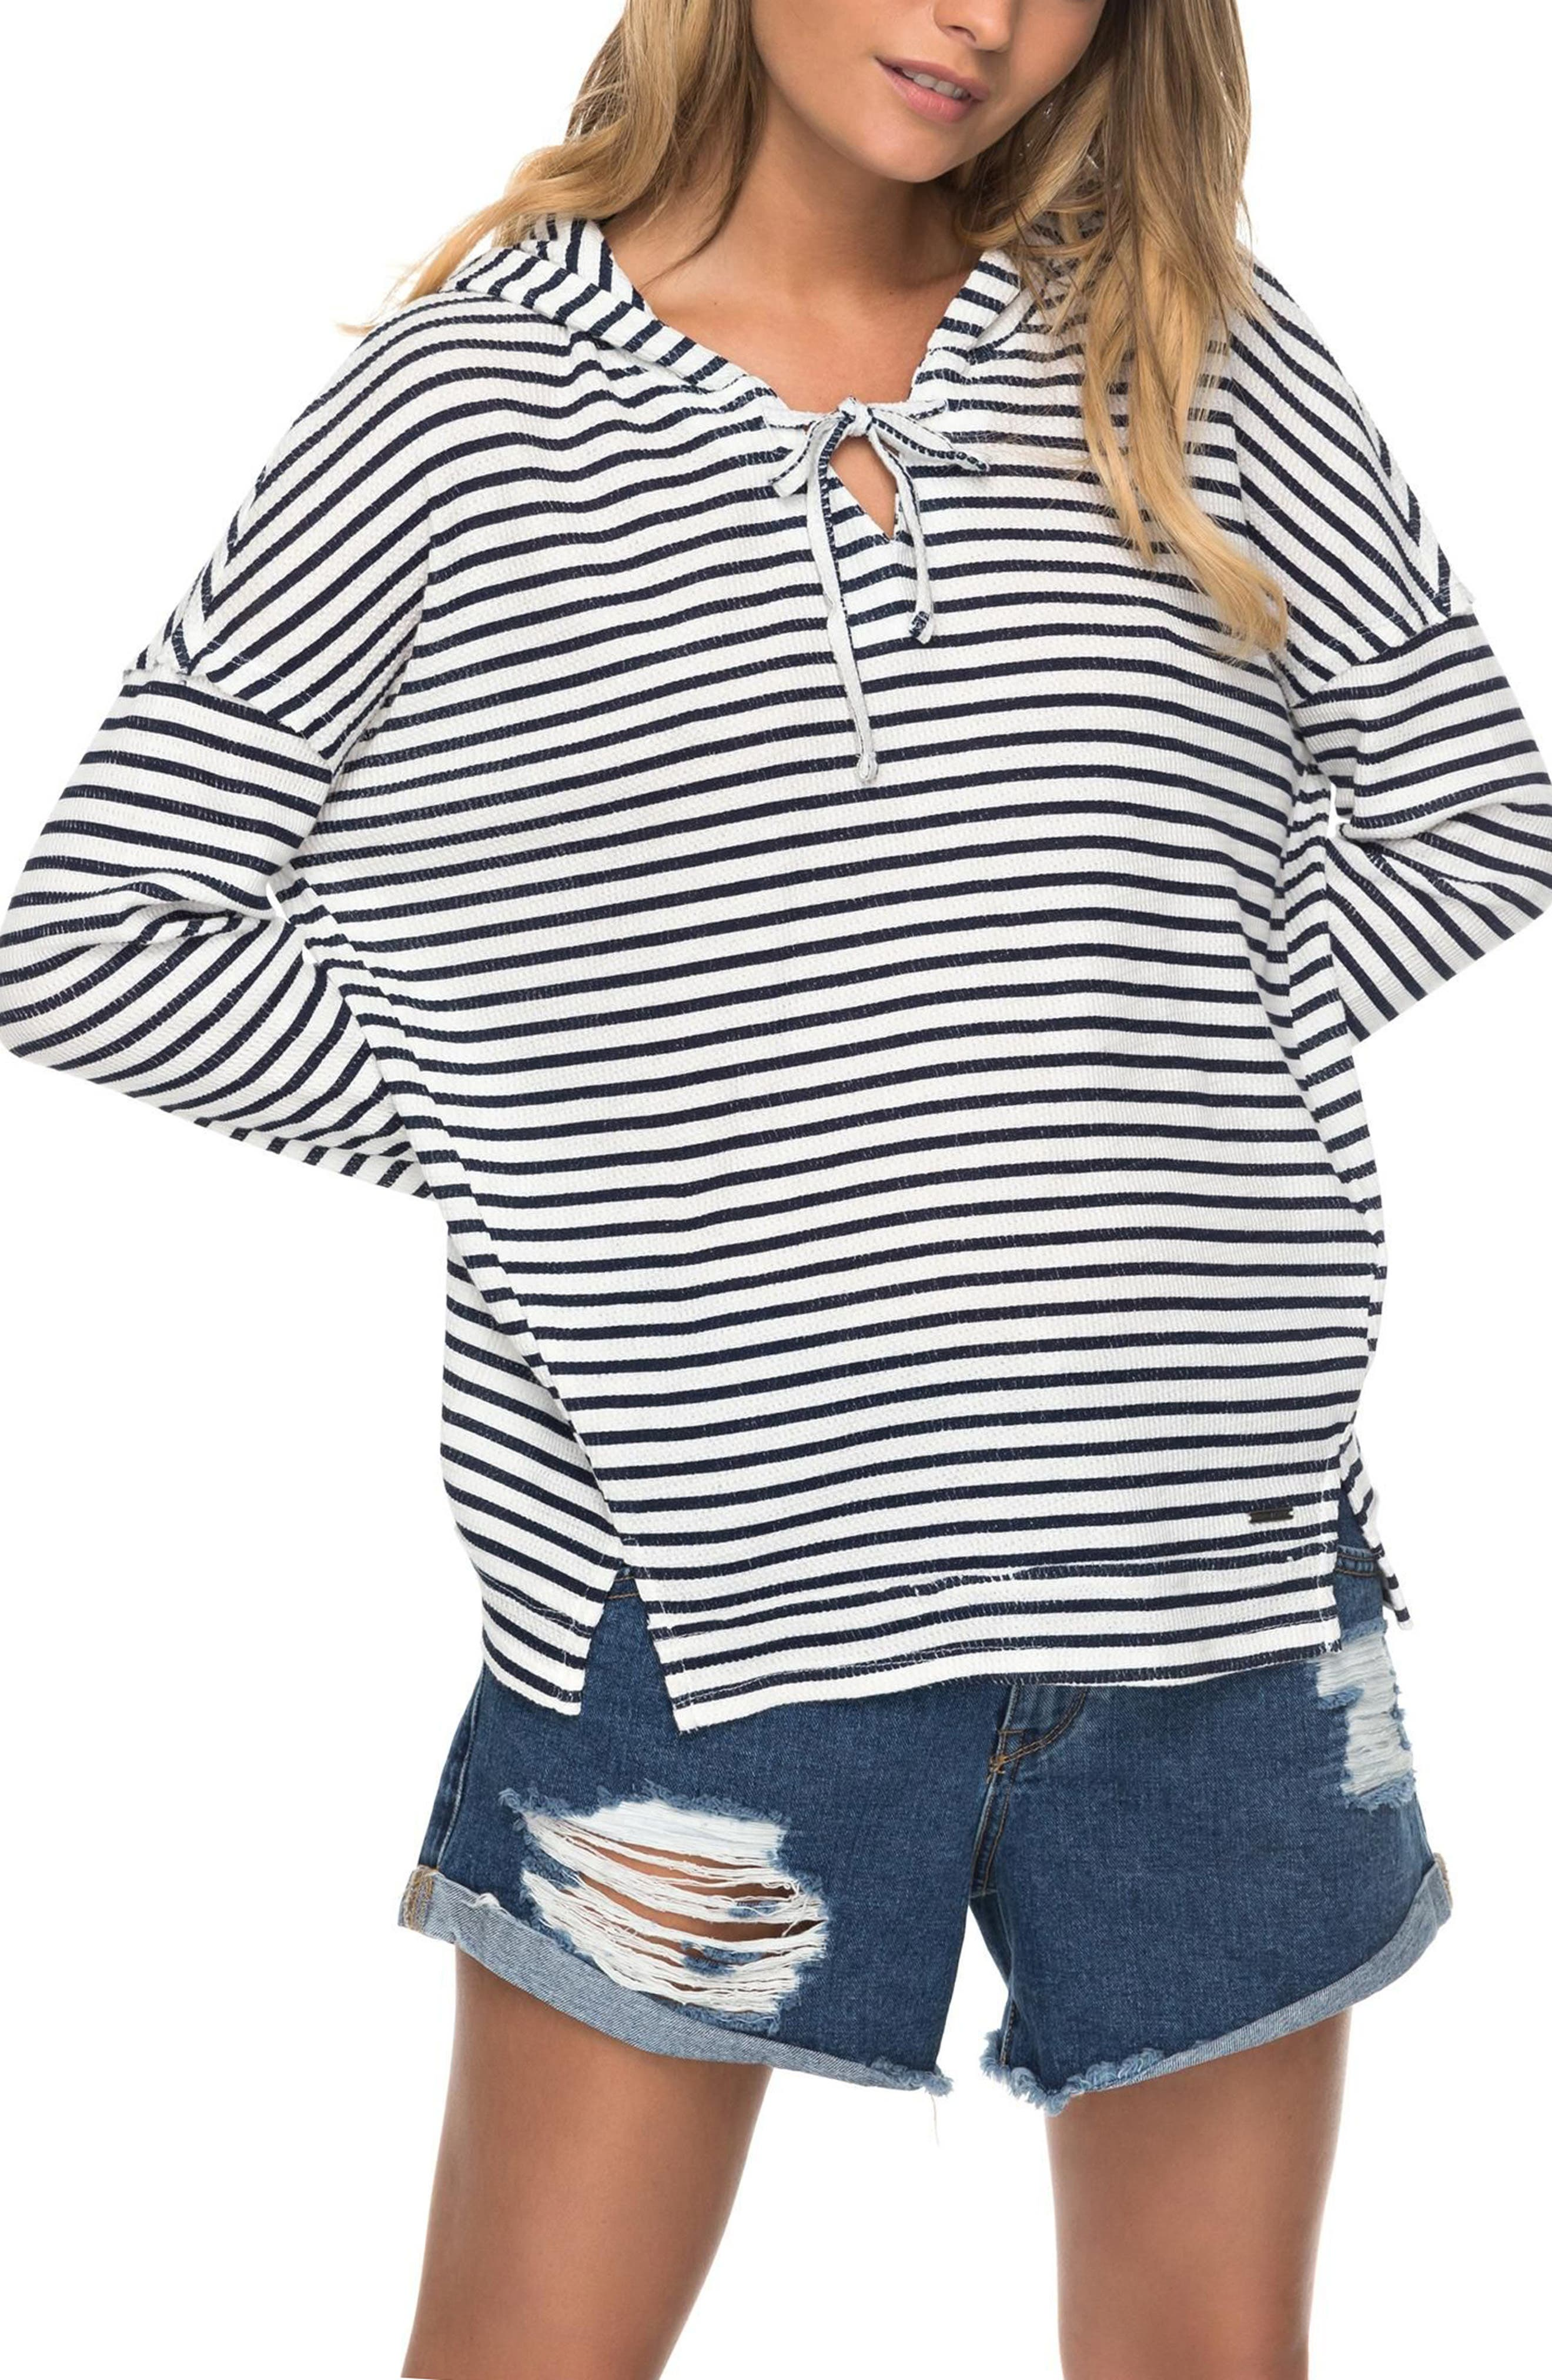 Wanted and Wild Thermal Hooded Top,                         Main,                         color, Marshmallow Classic Stripe Vol